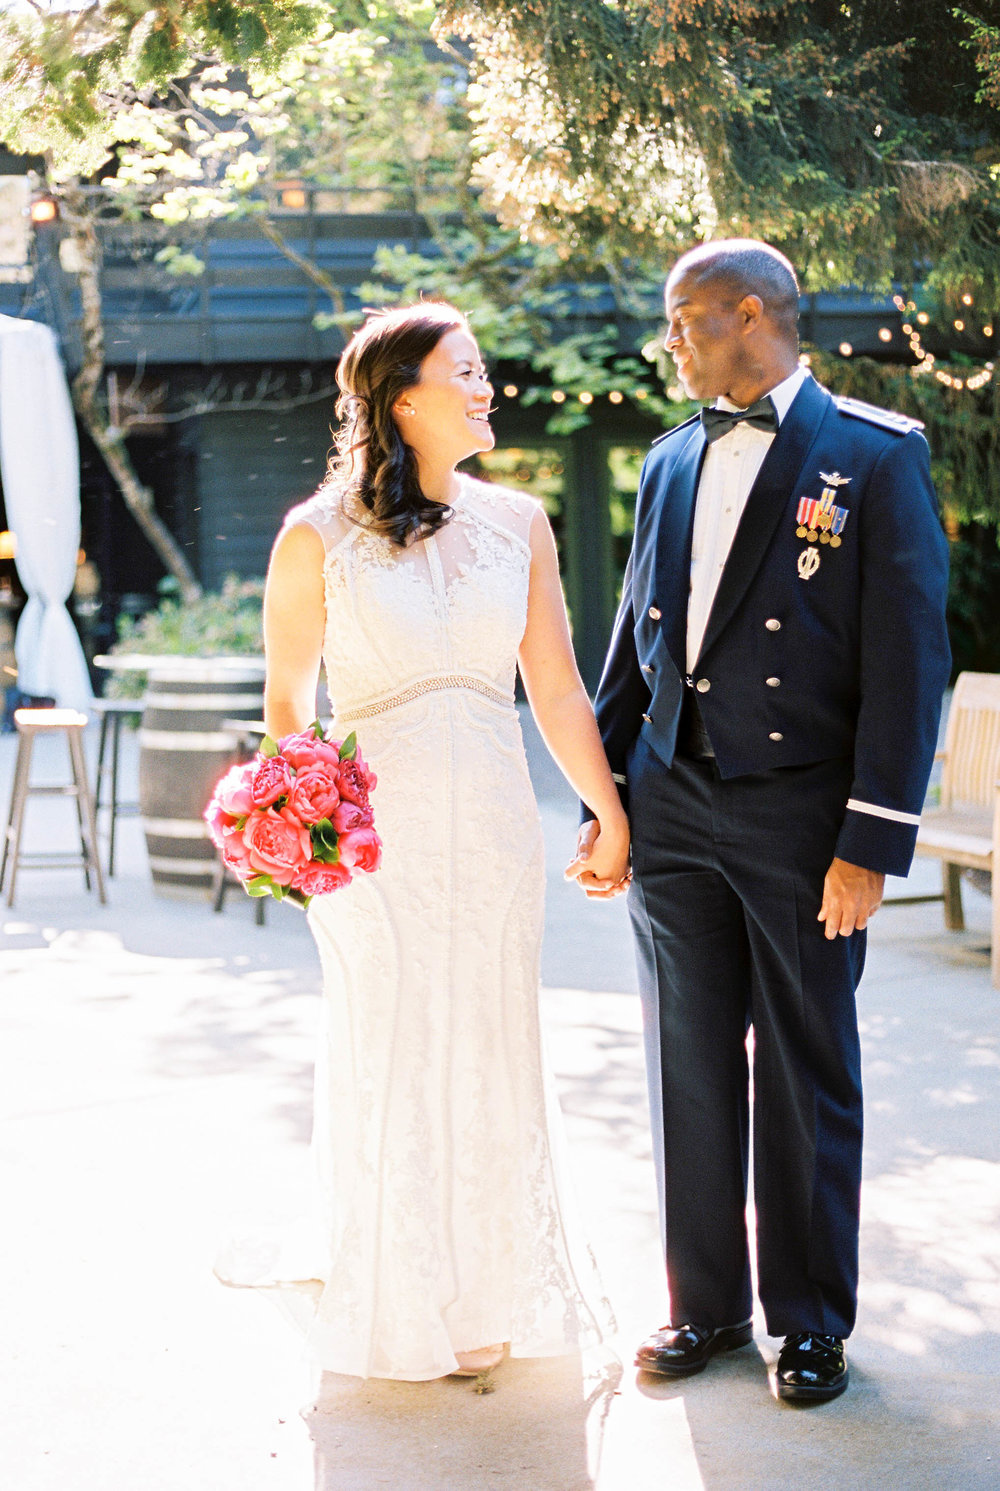 Wedding Planner Seattle | Wedding Wise | Kerry Jeanne Photography | JM Cellars Wedding | Fuschia and navy blue wedding